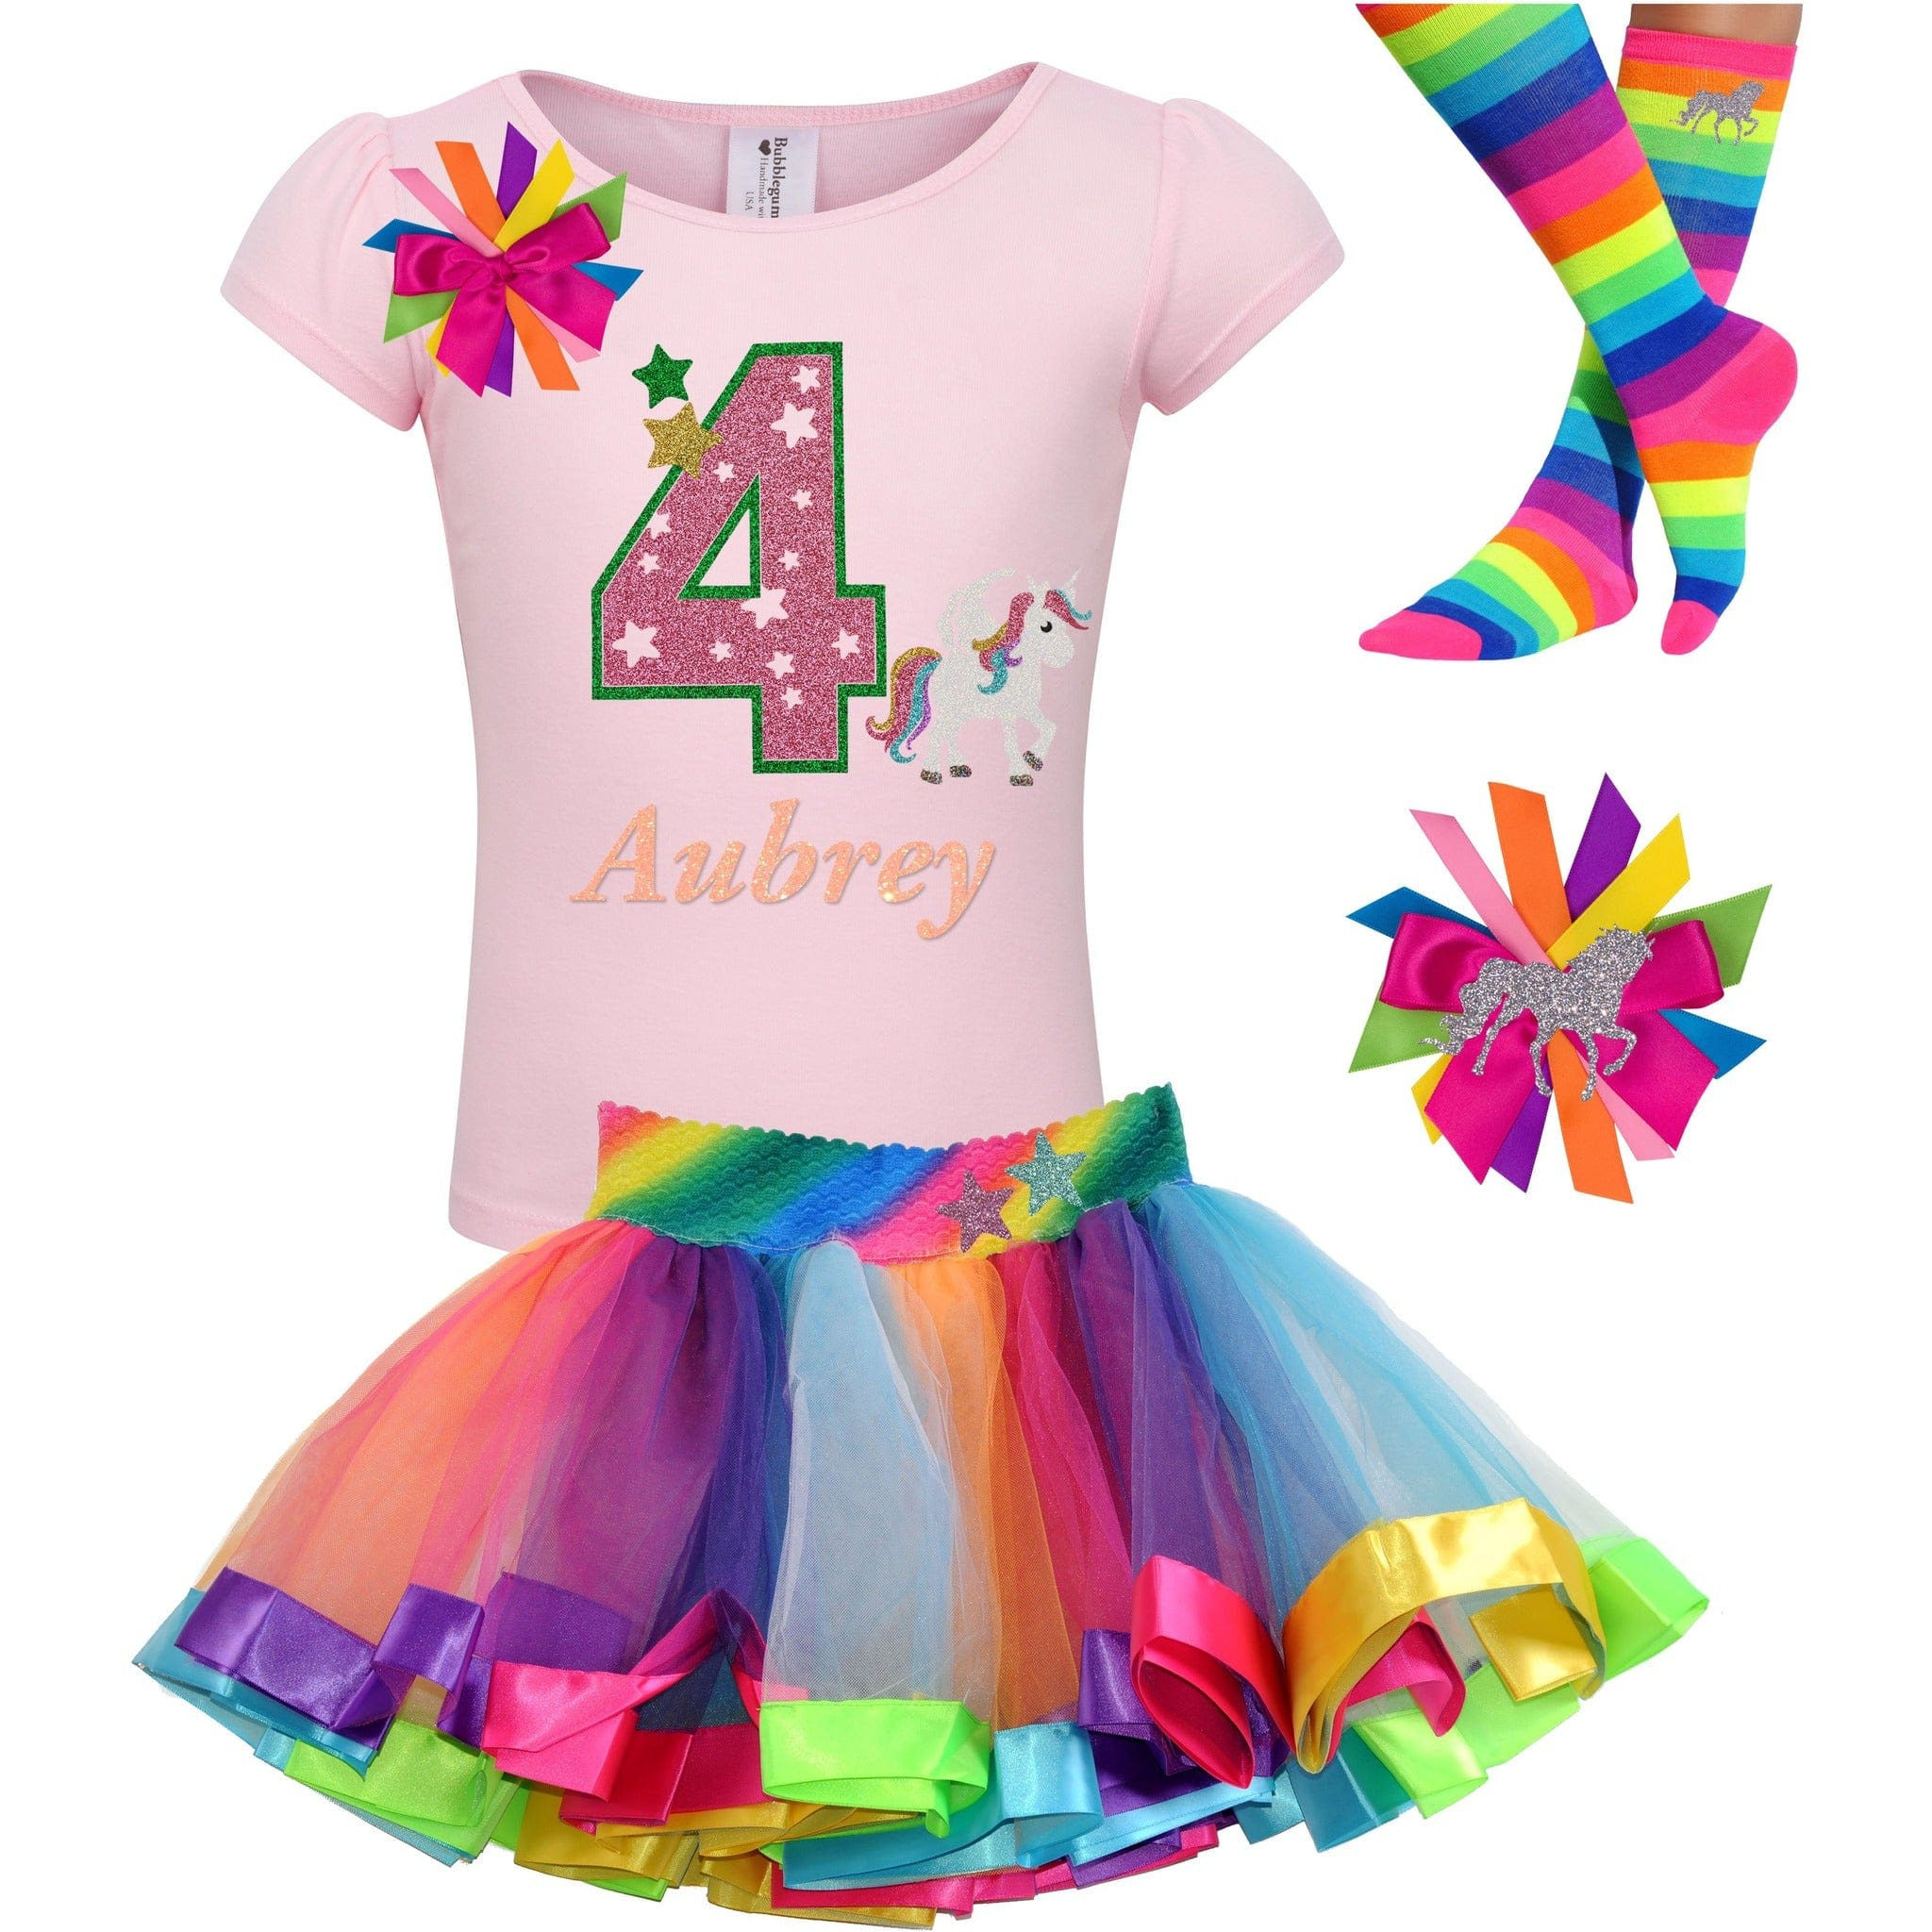 4th Birthday Unicorn Shirt 4 Rainbow Party Outfit Star 4PC Set